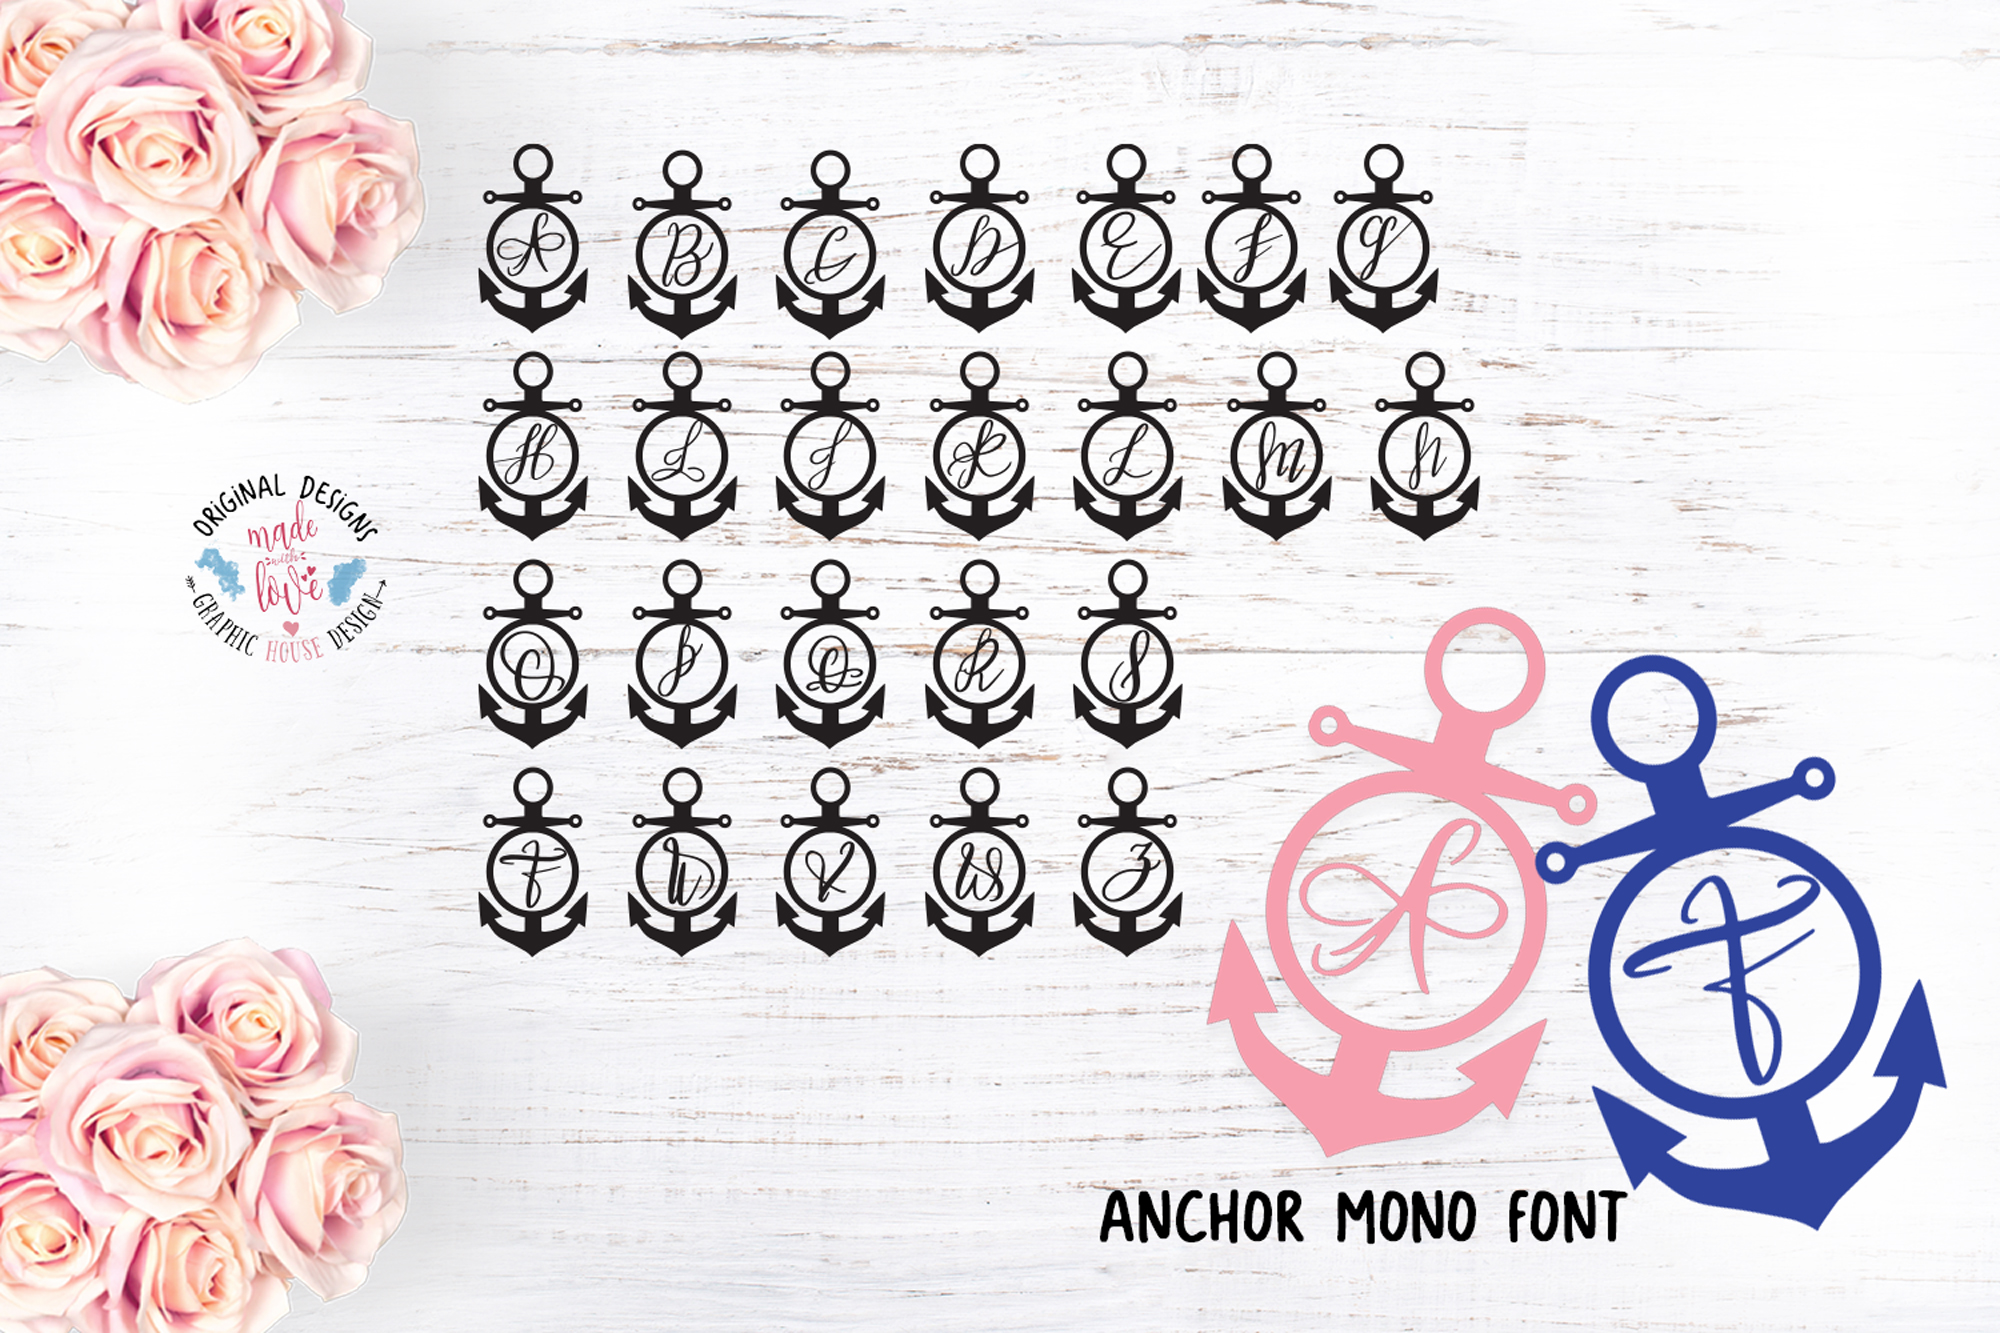 Anchor Mono Font example image 1